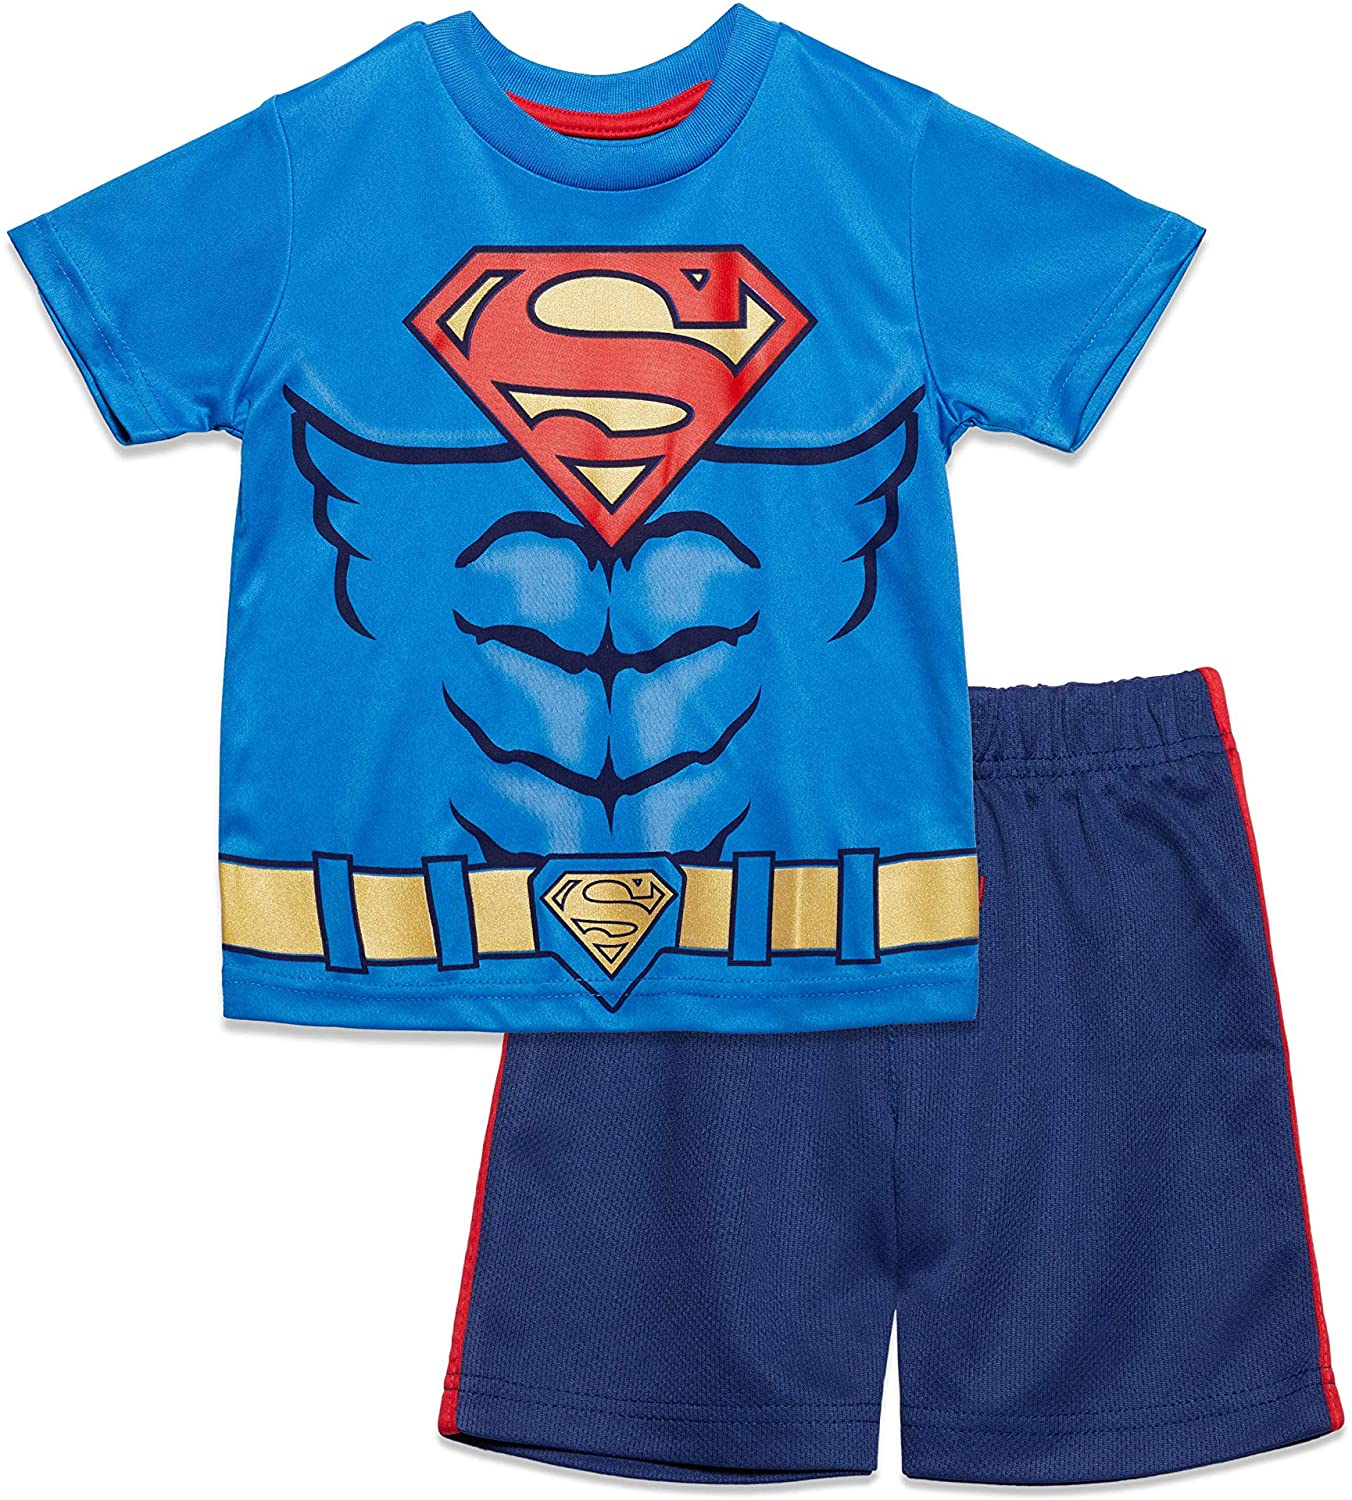 Warner Bros. Superman Big Athletic T-Shirt and Shorts Set 12